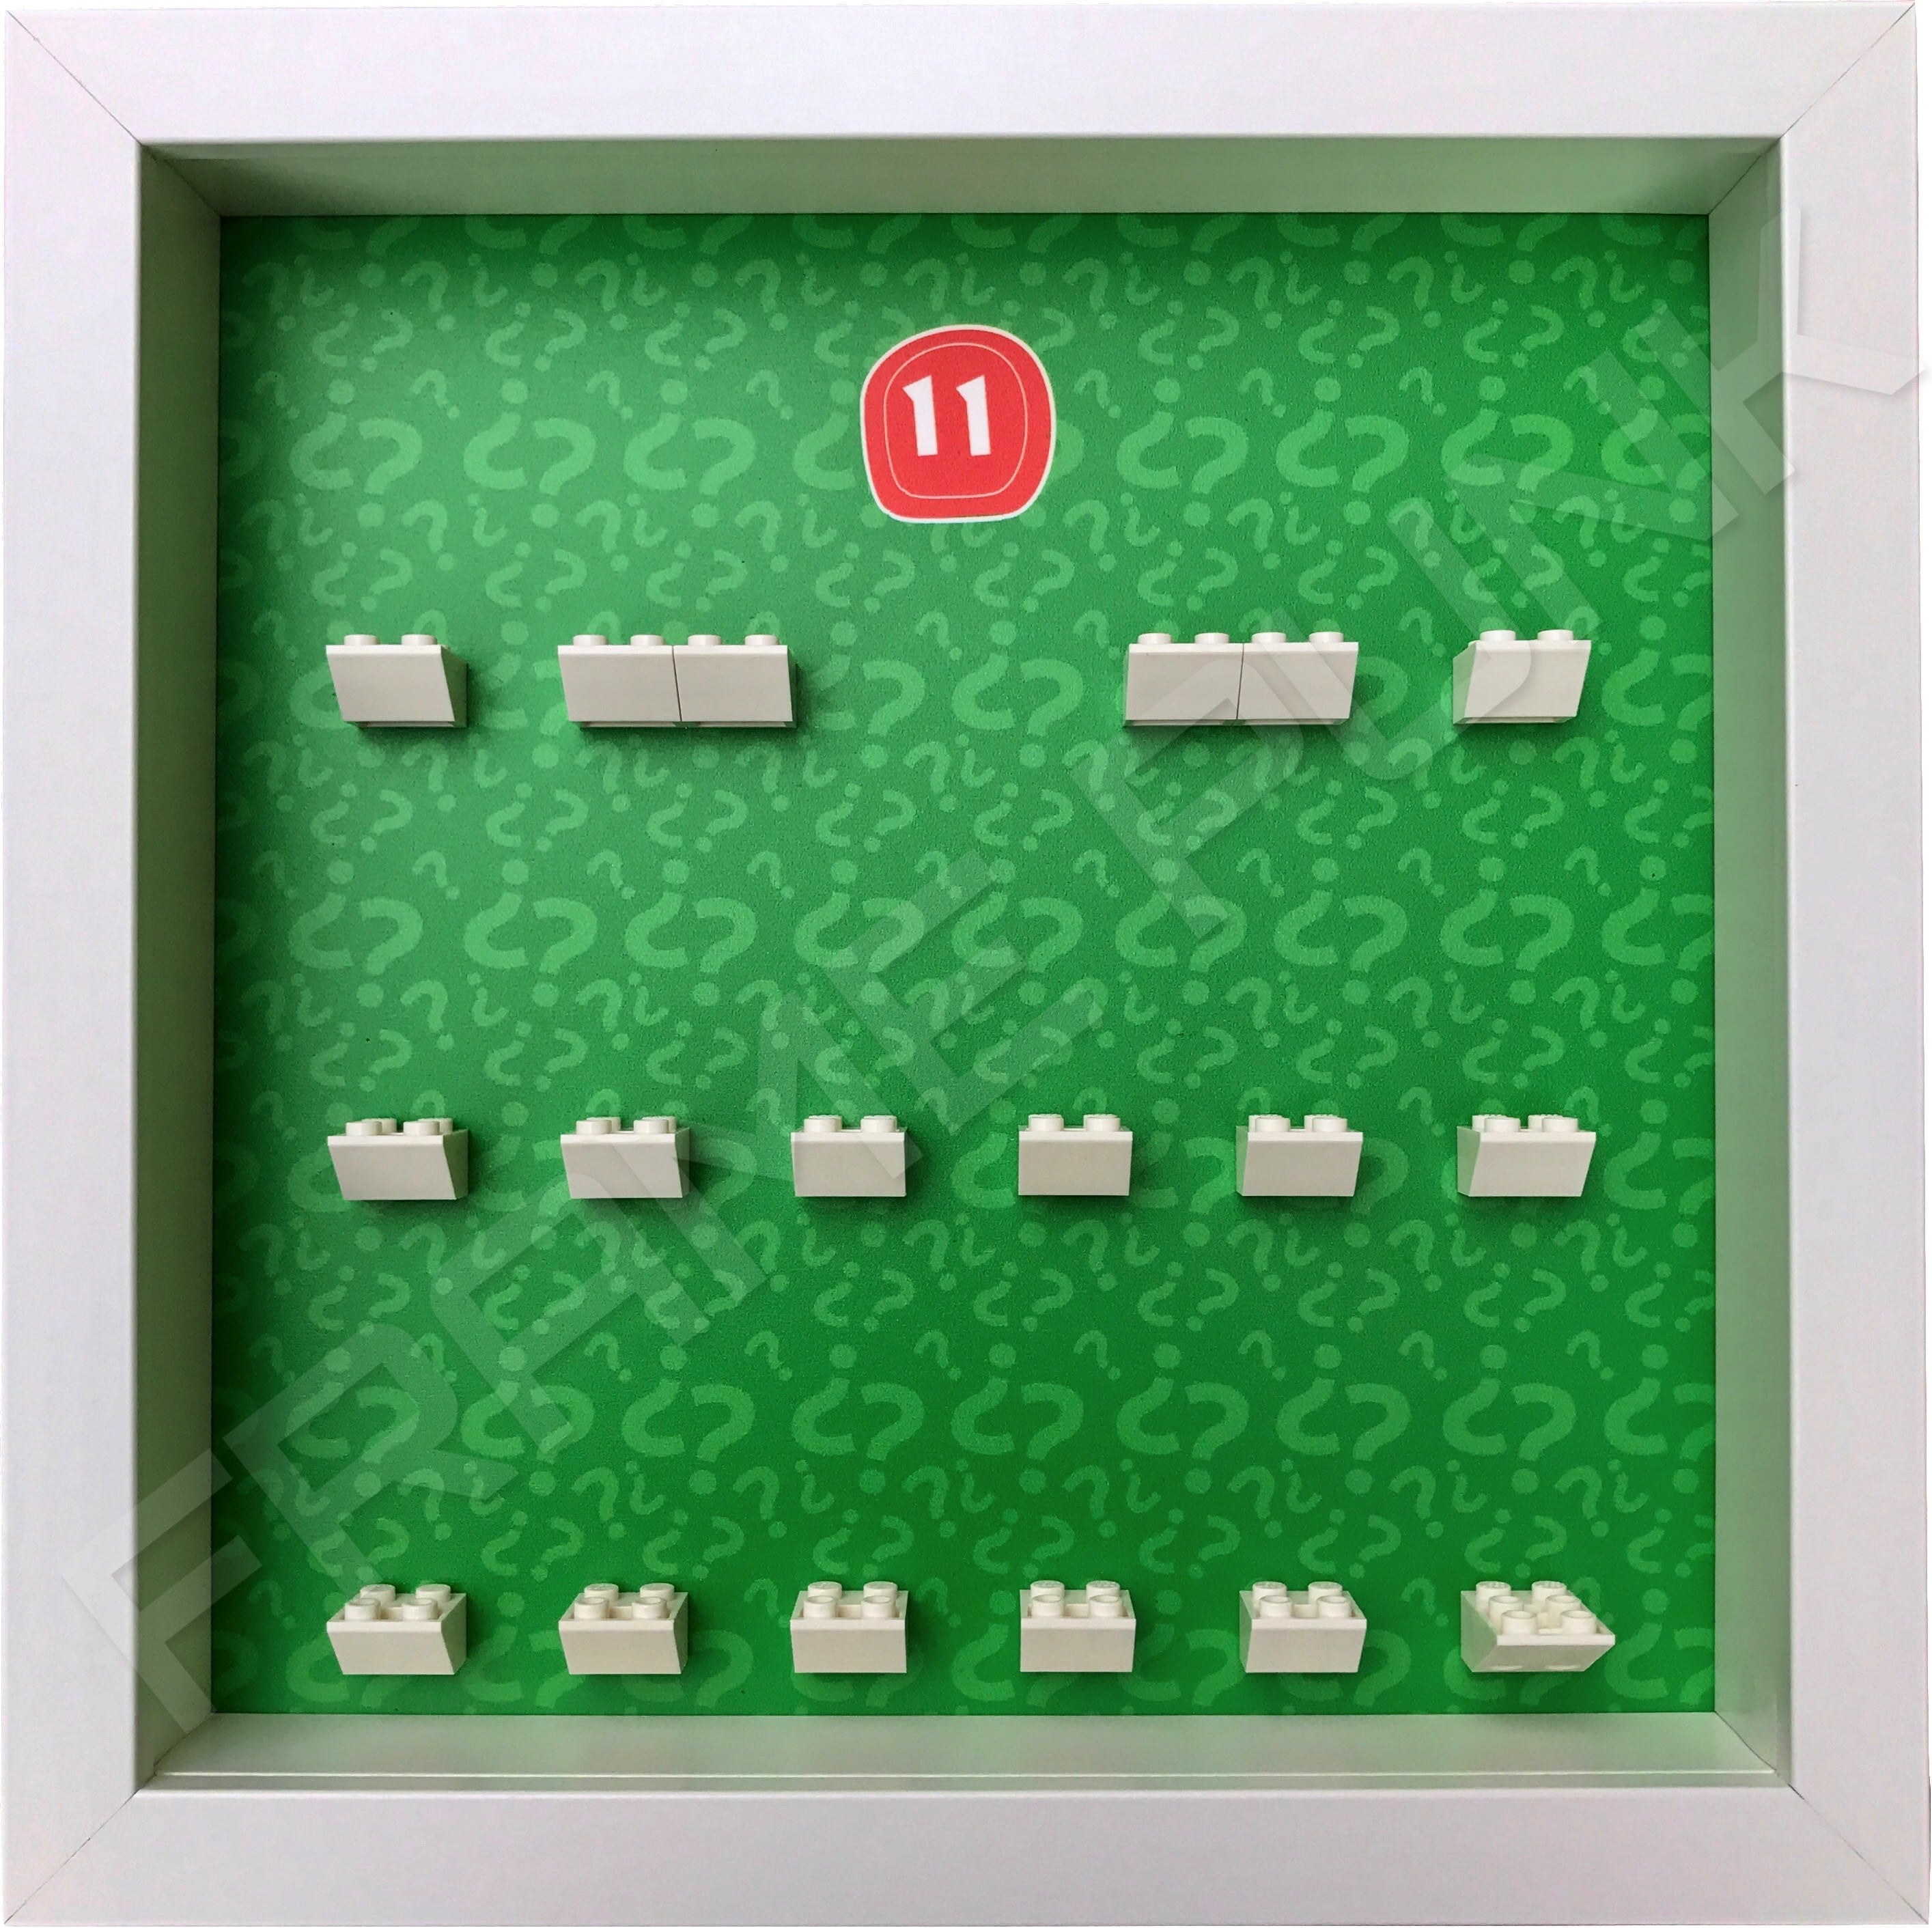 Lego minifigures series 11 display frame